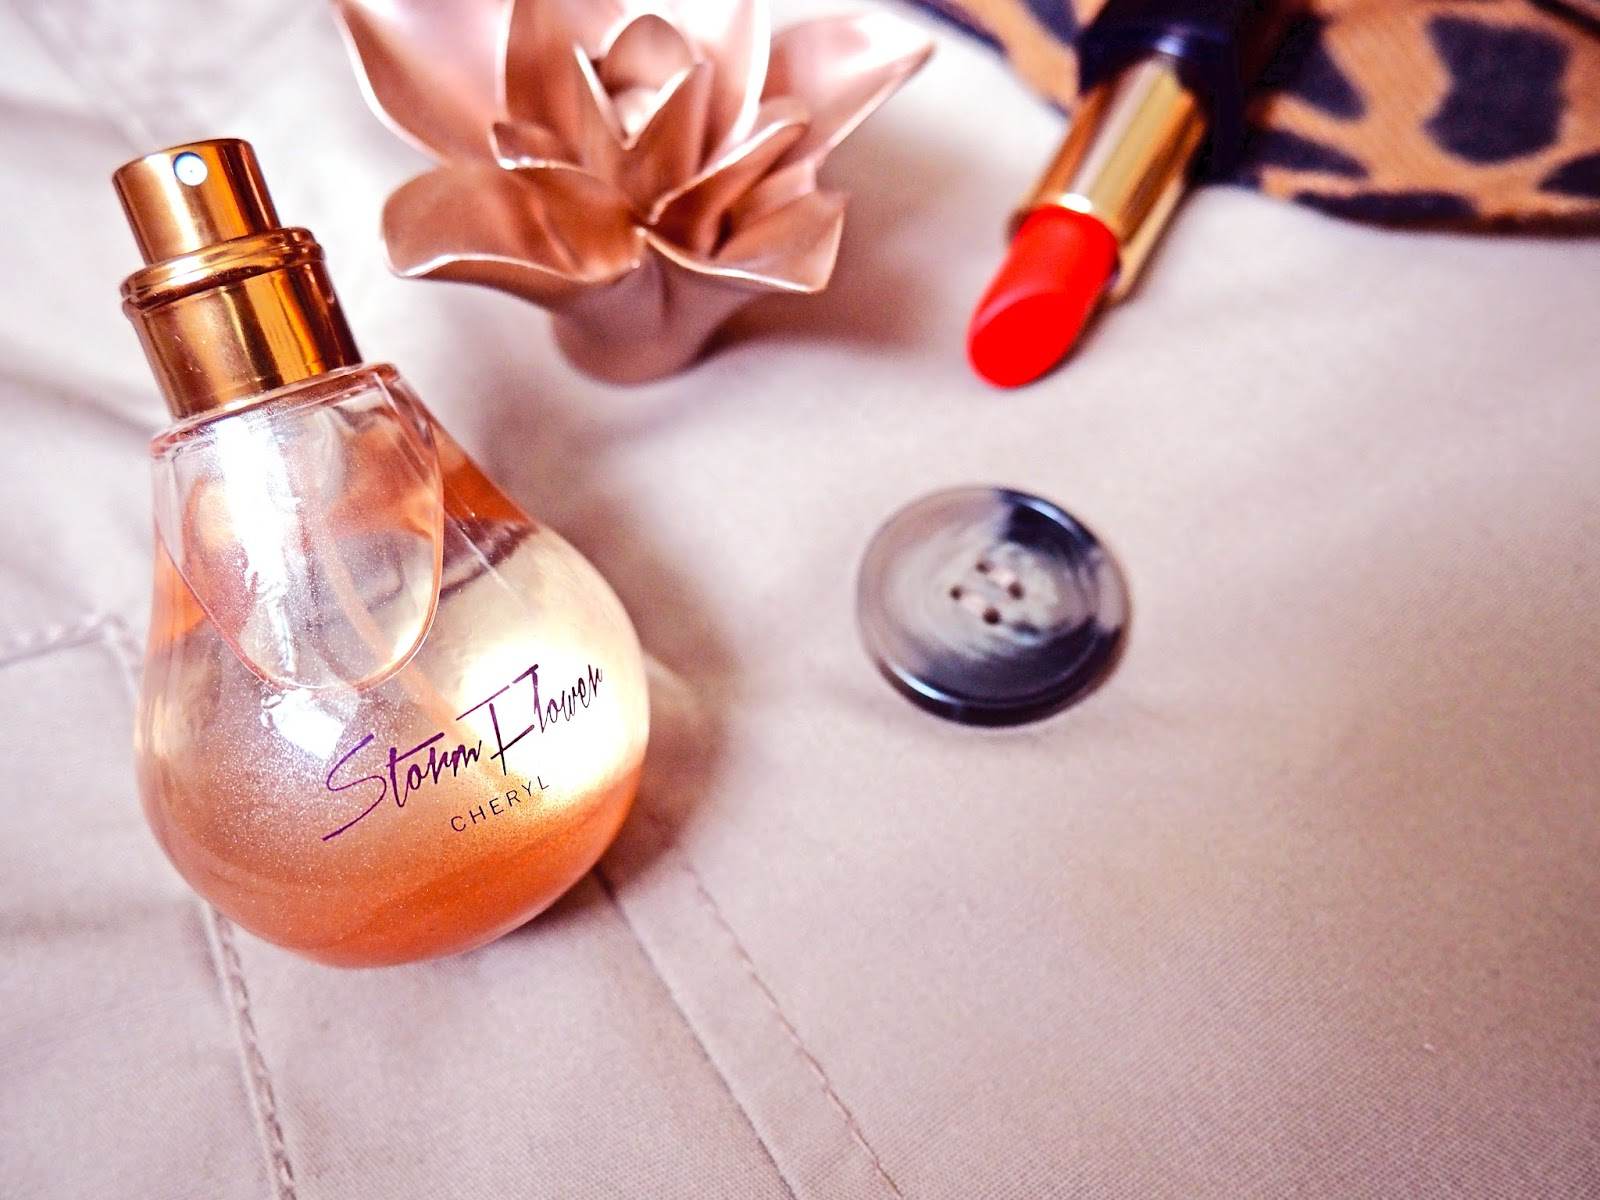 Cheryl StormFlower Perfume Review Giveaway